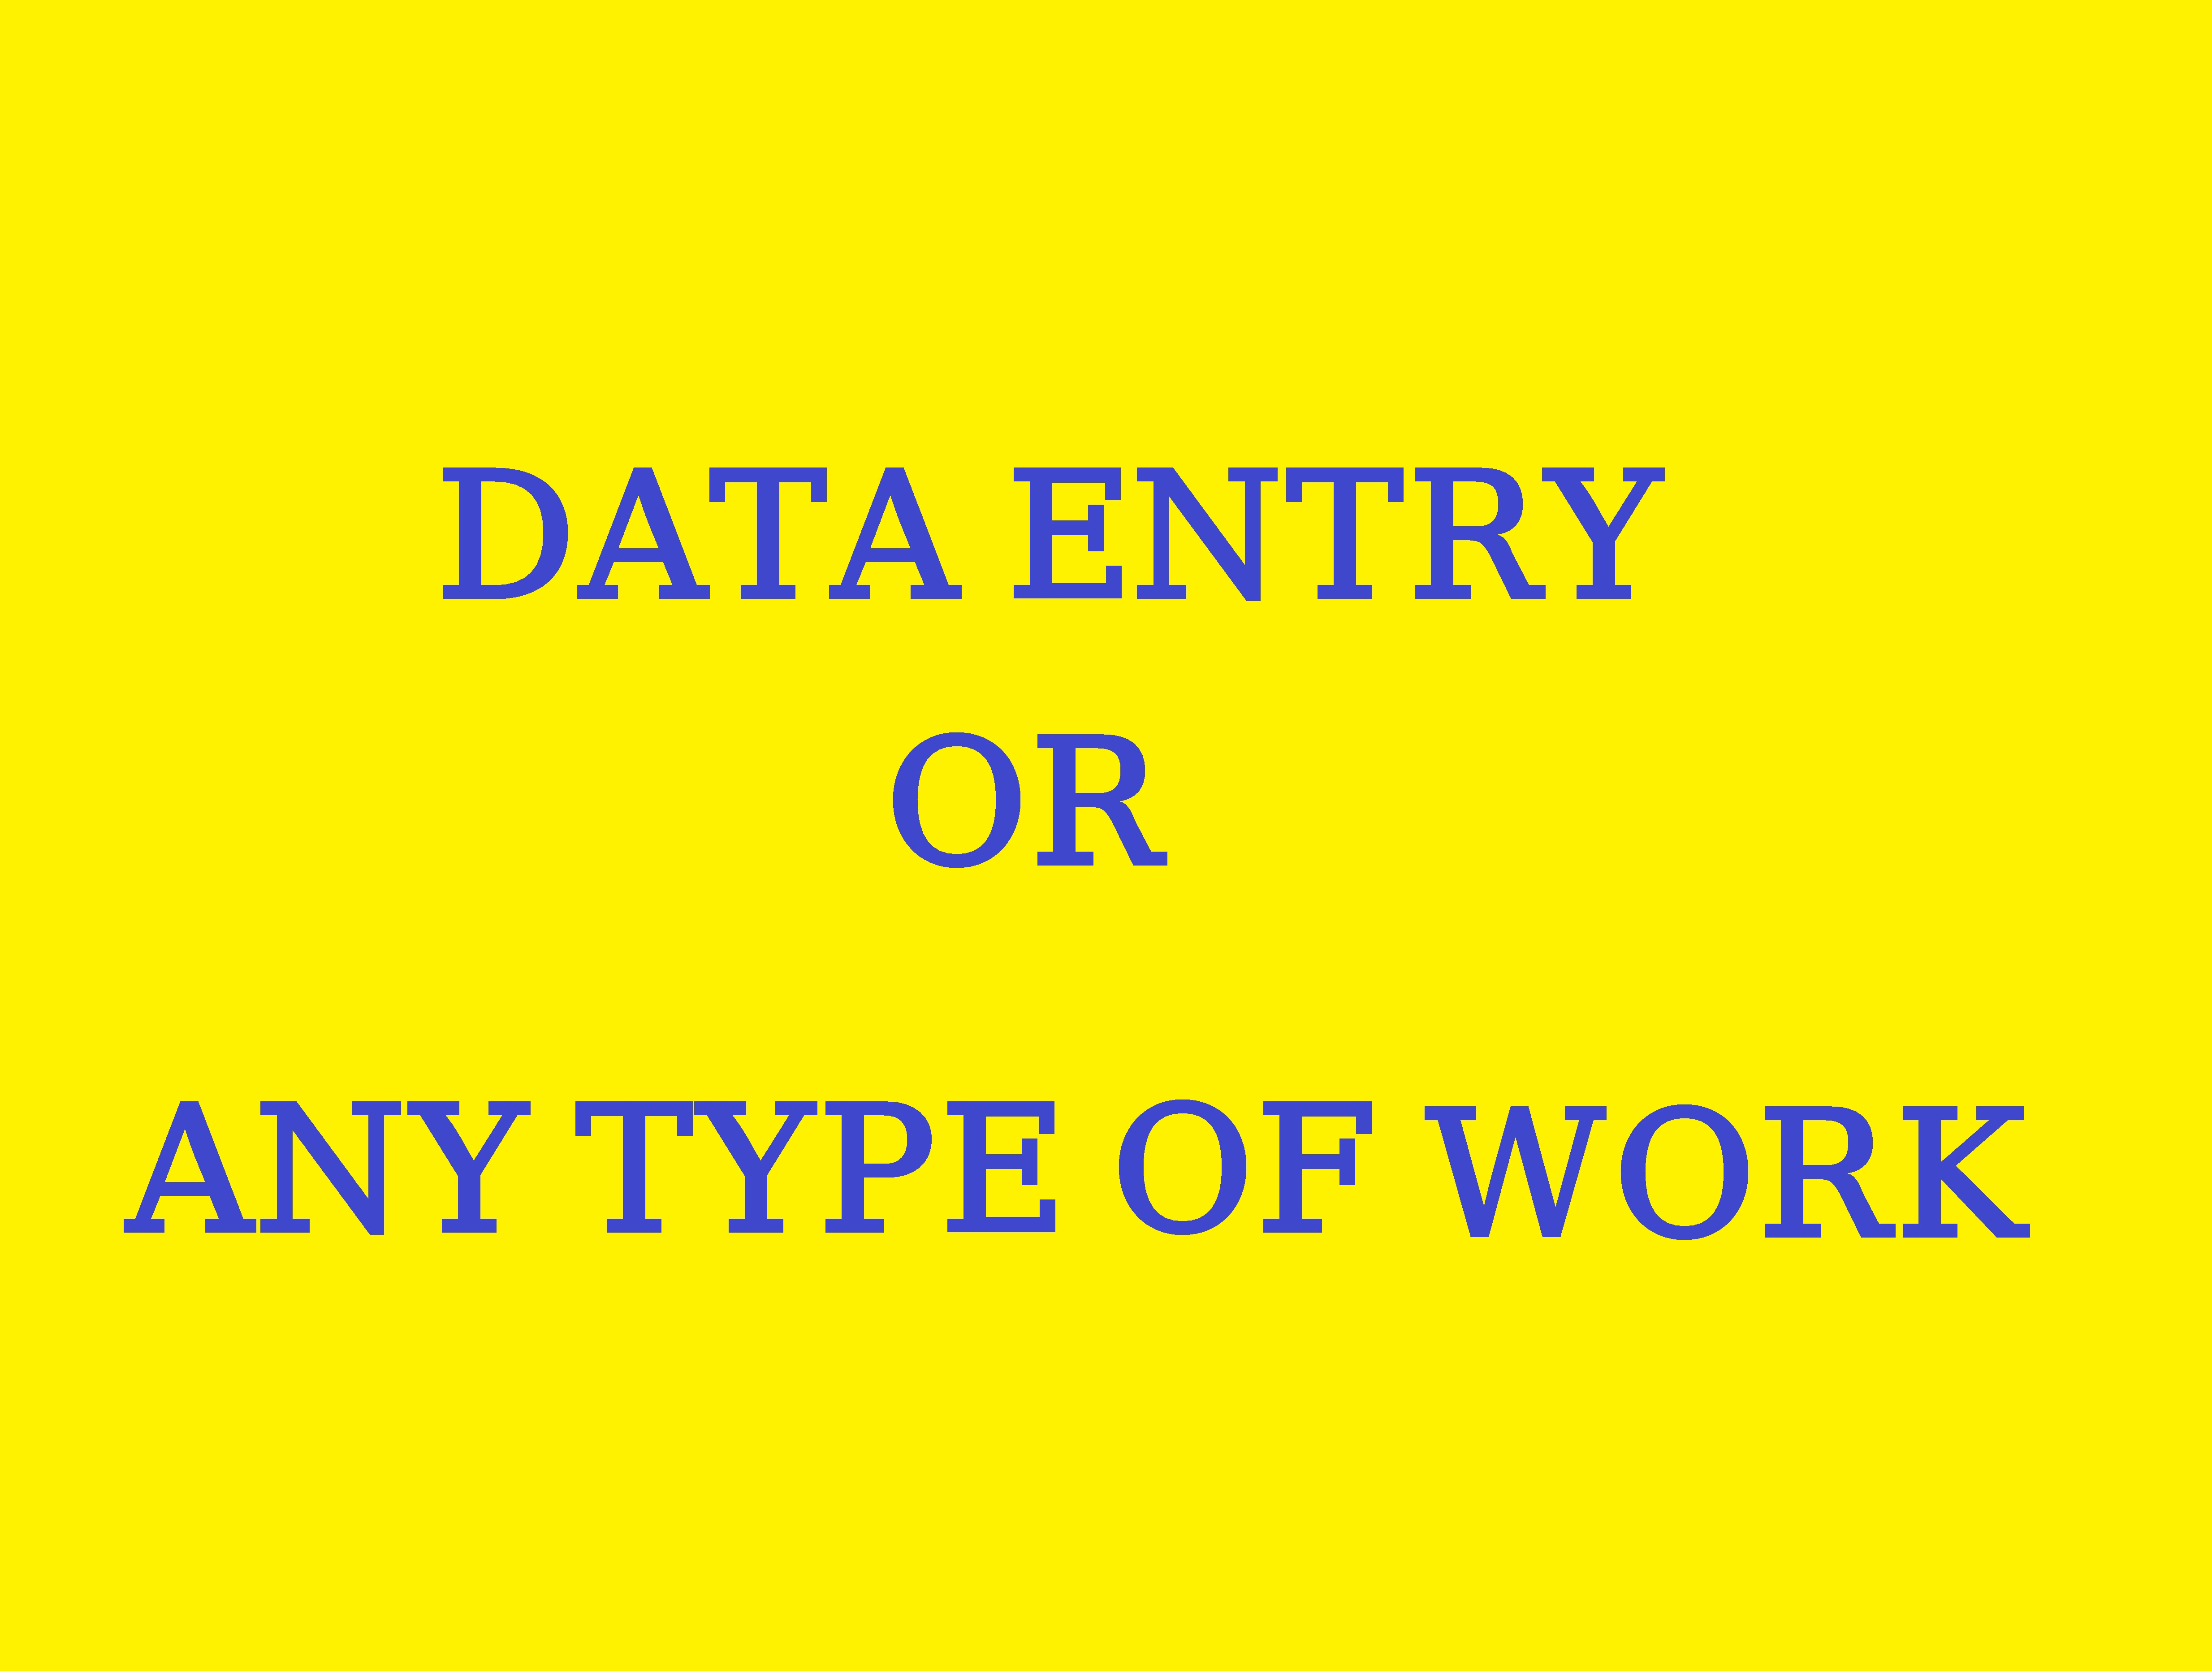 I will do any type of work or data entry work